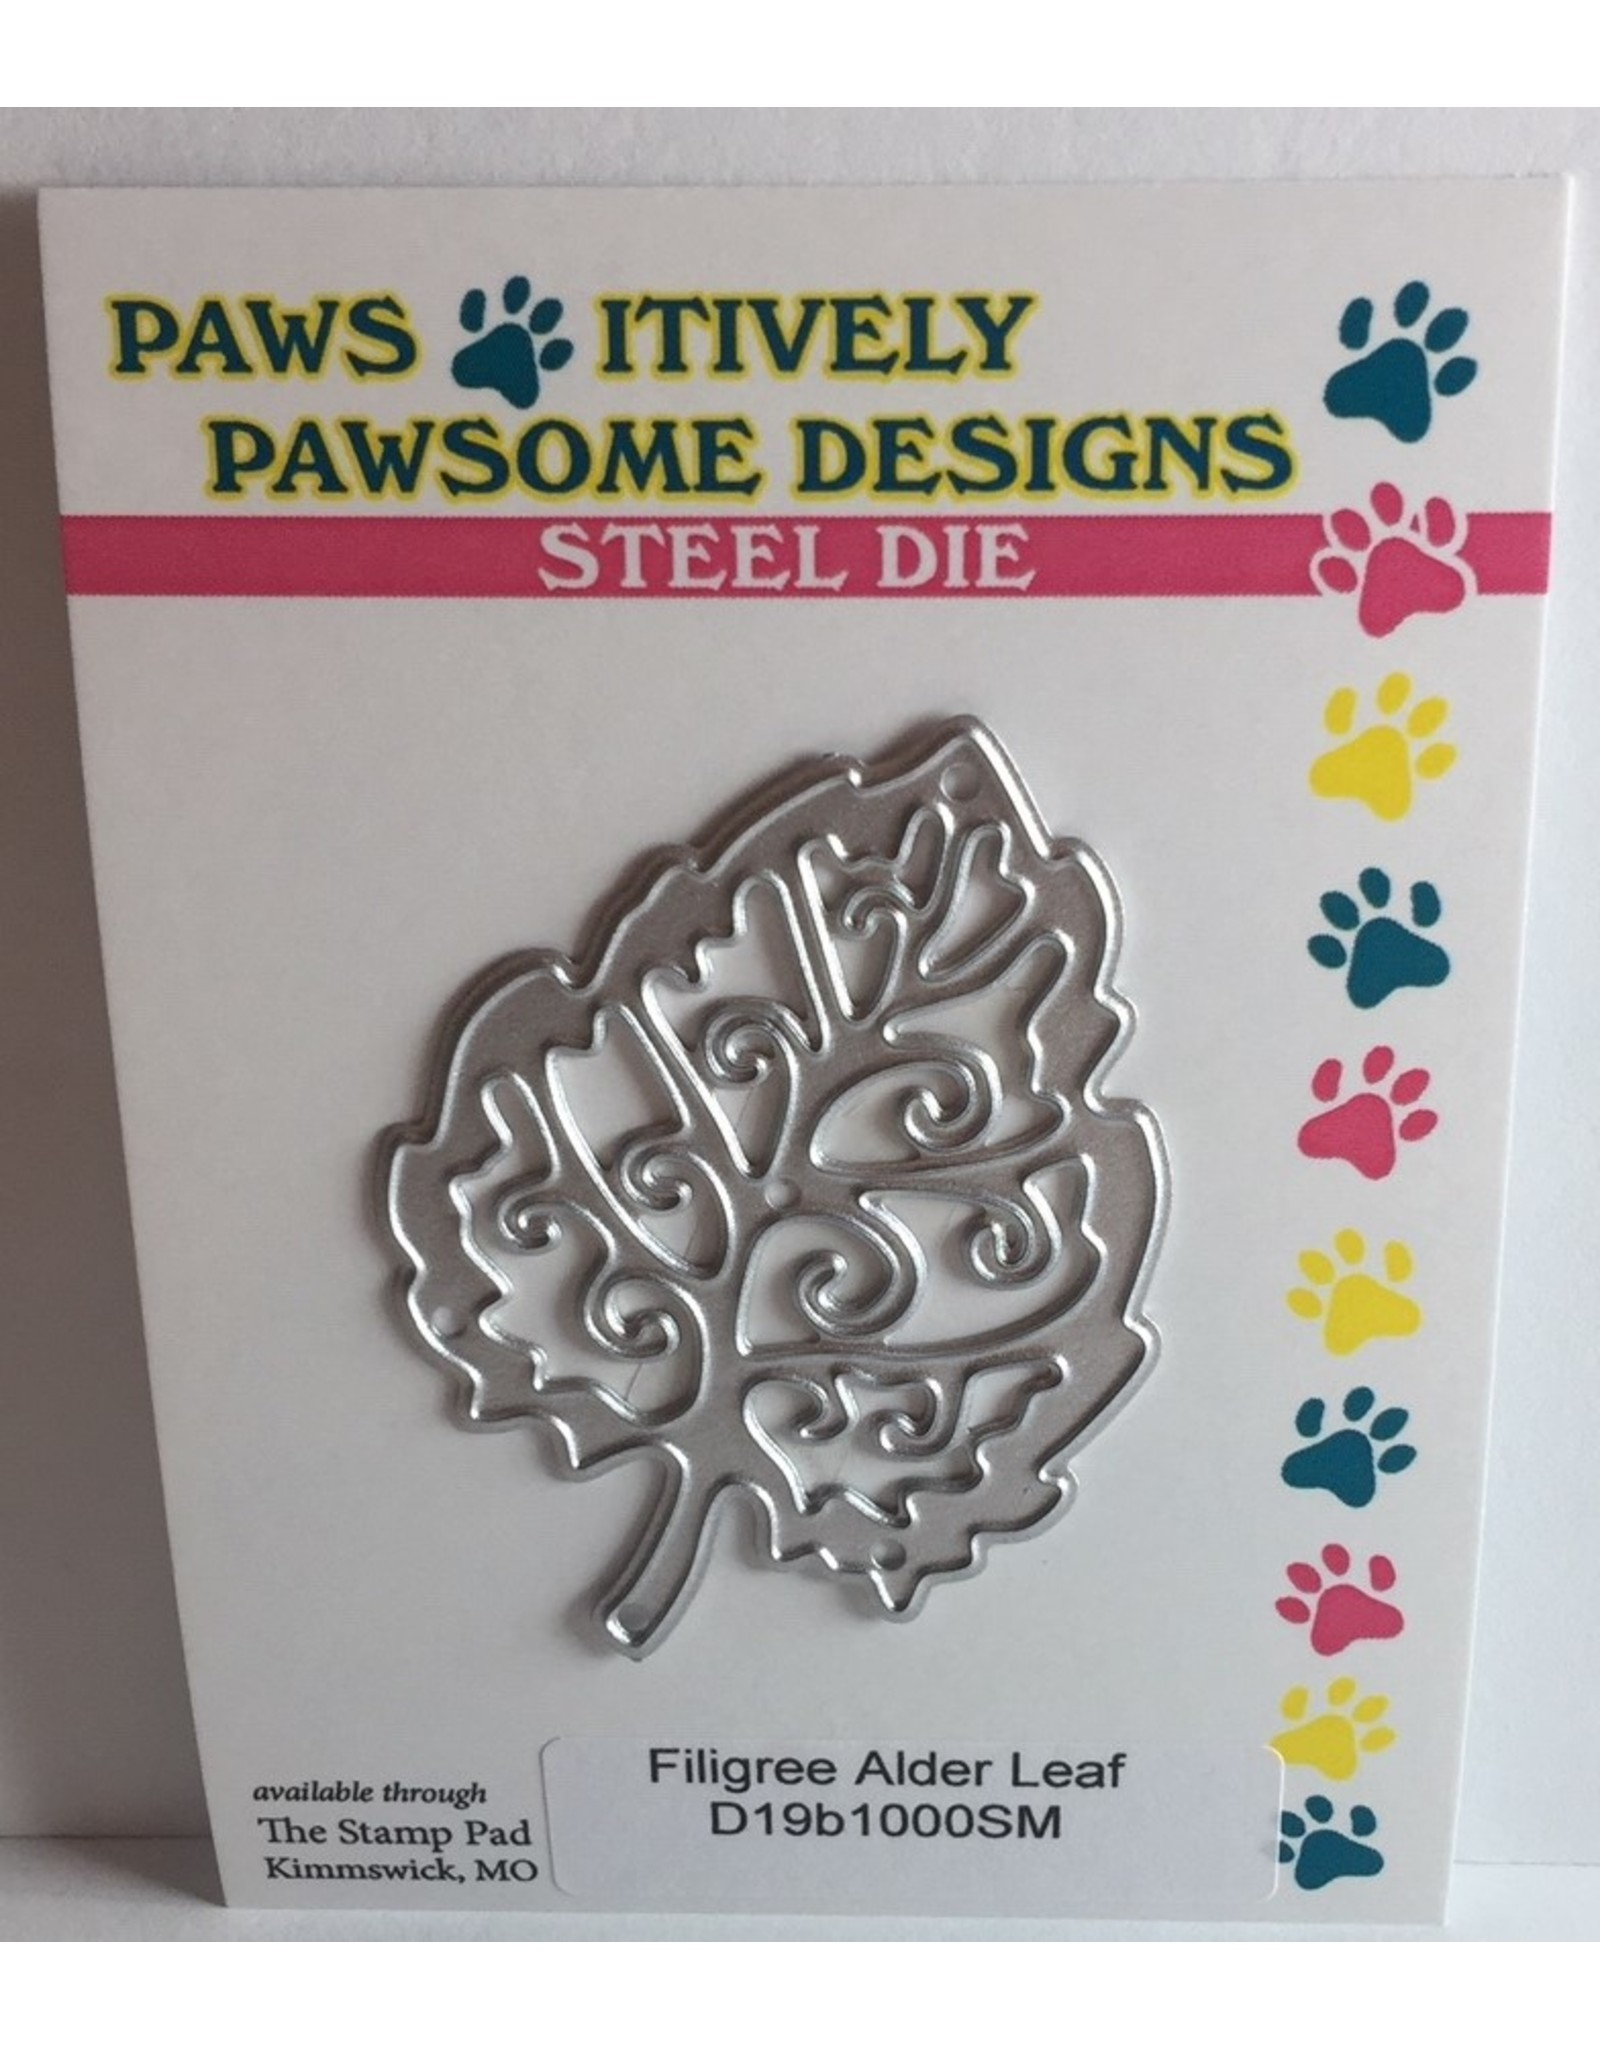 Paws-Itively Pawsome Designs Filigree Alder Leaf - Die